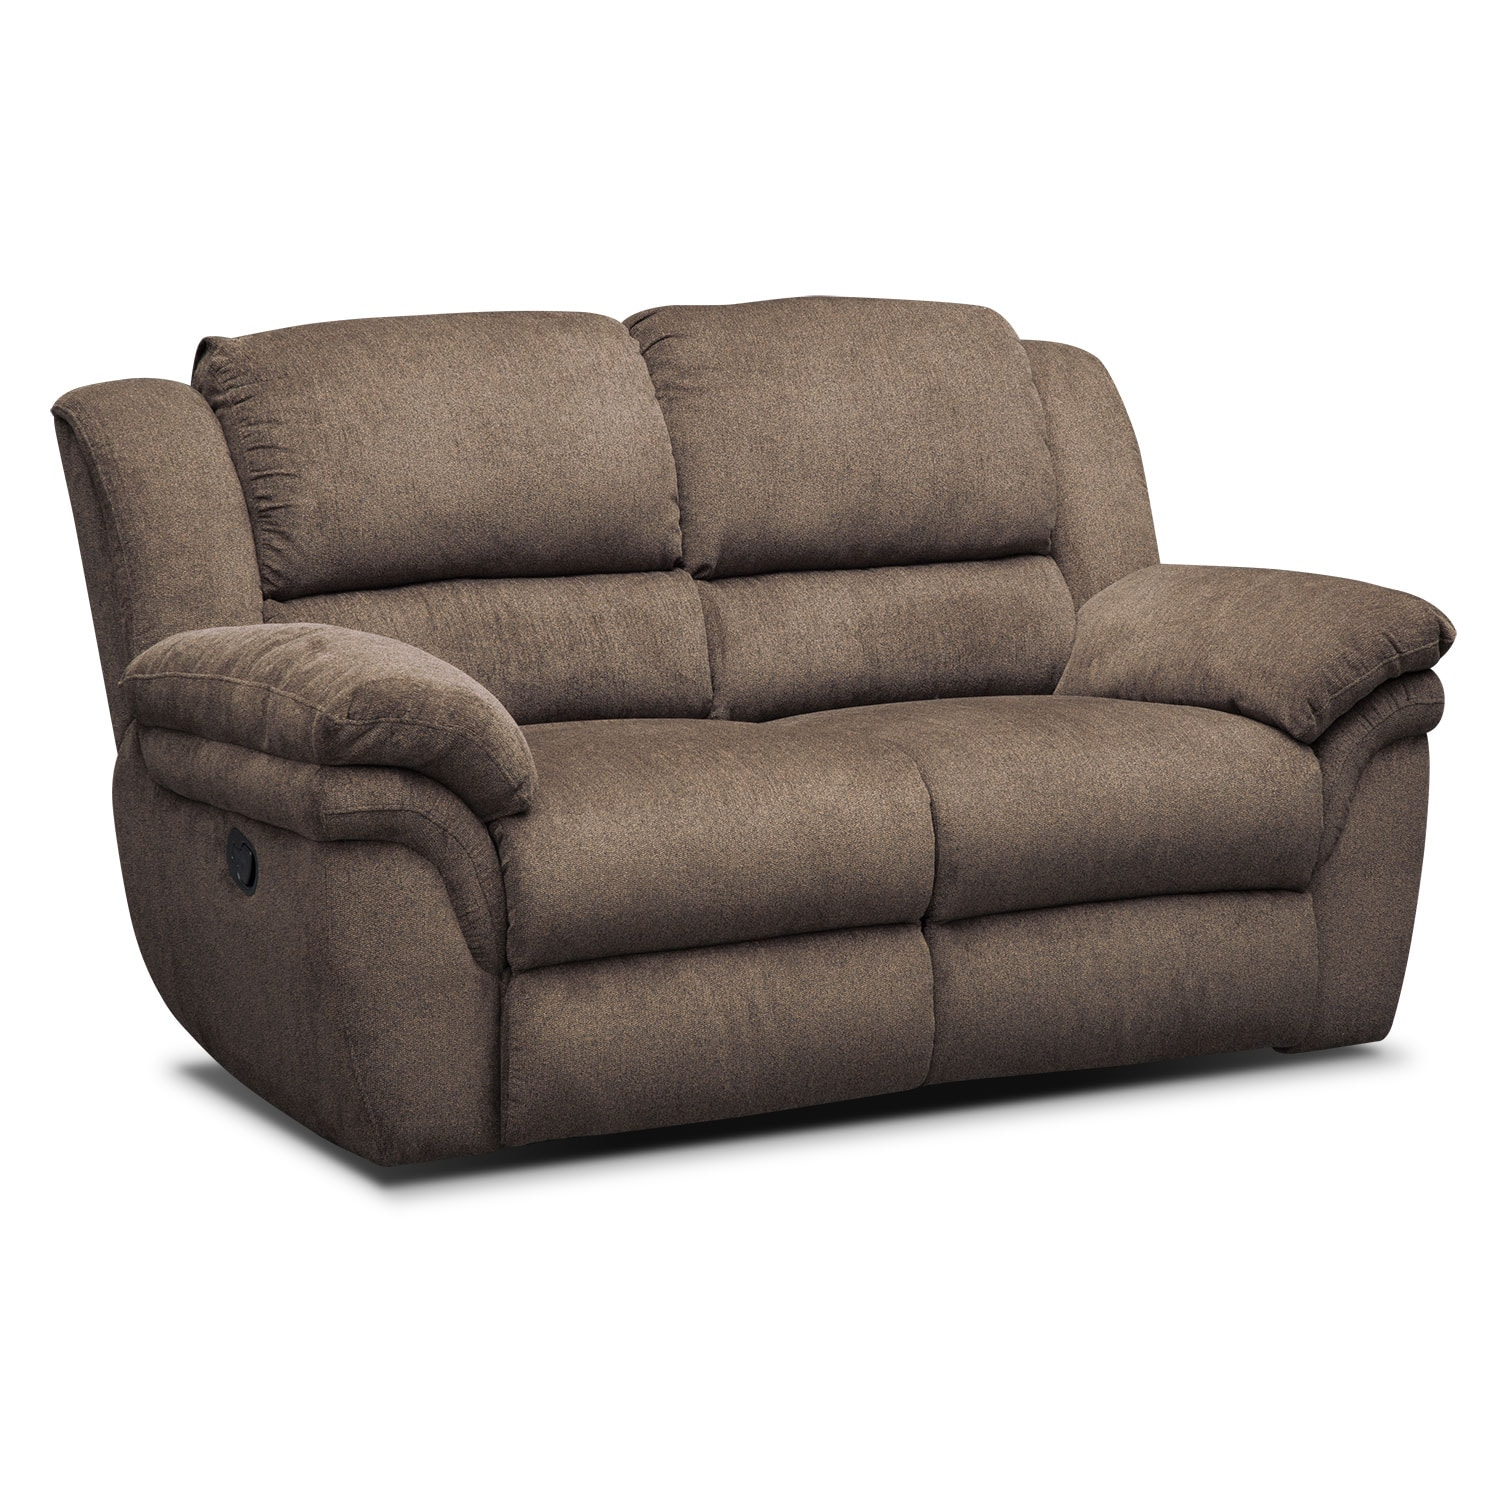 Aldo Manual Dual Reclining Sofa Loveseat And Recliner Set Mocha American Signature Furniture